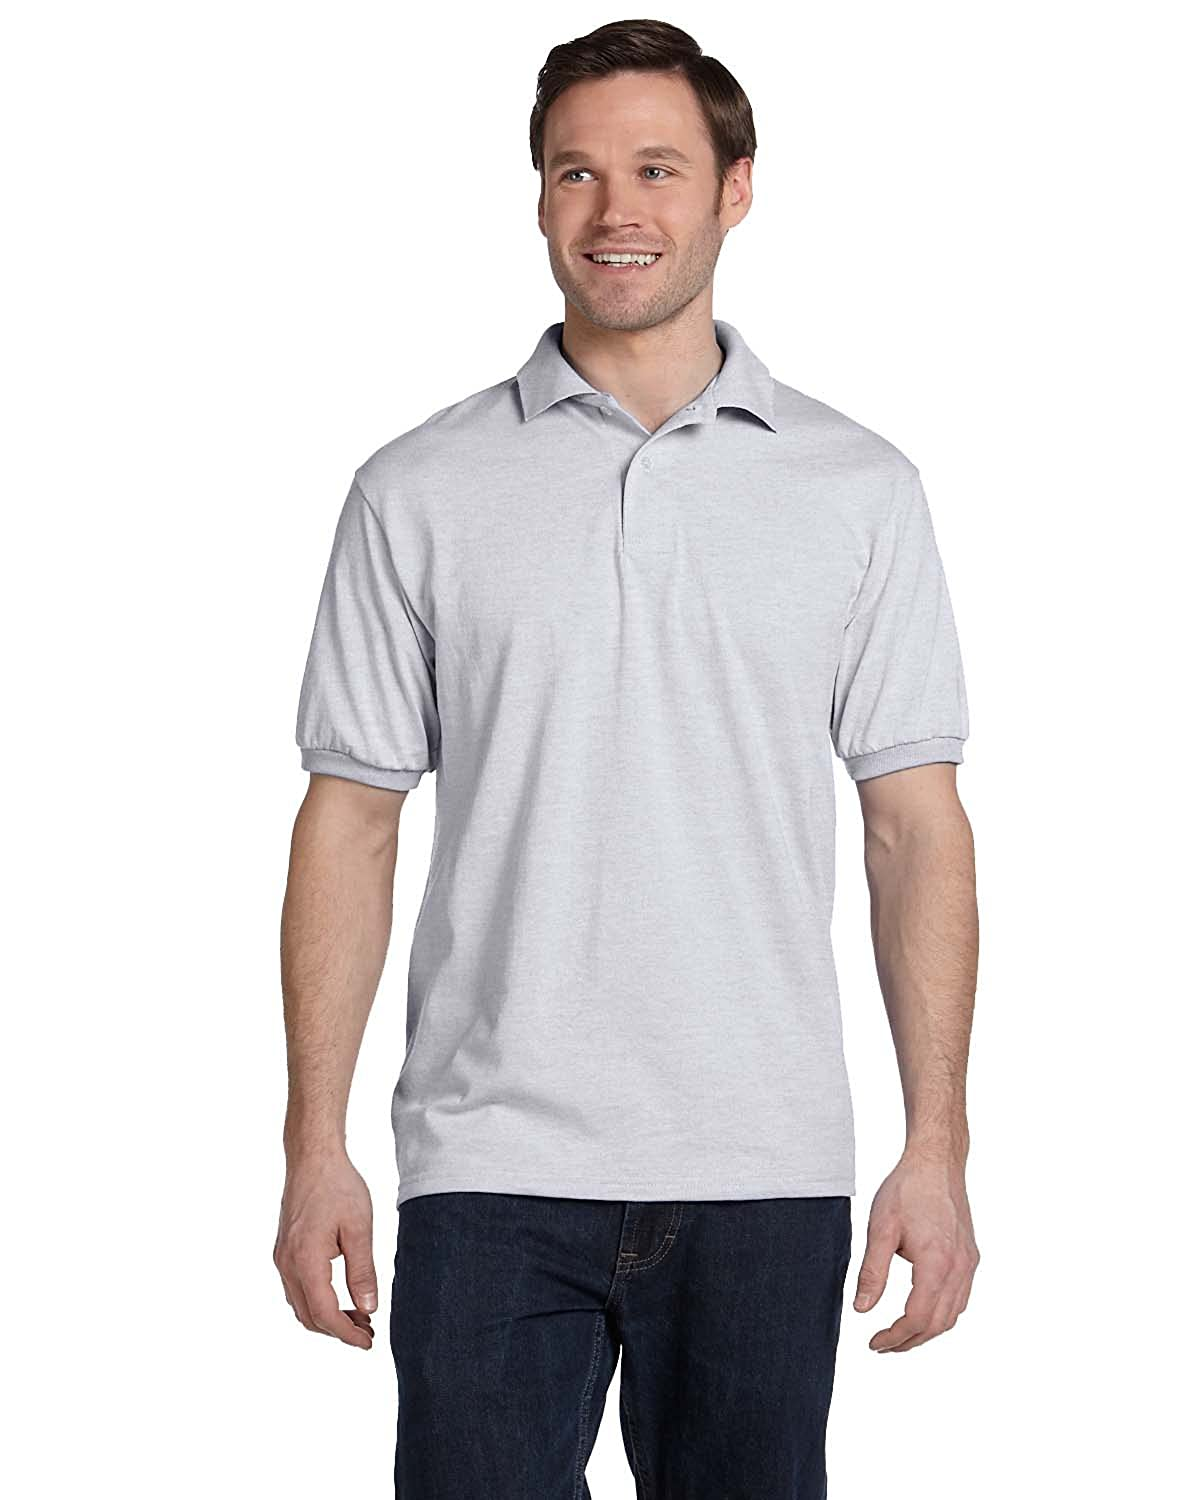 Polo Cotton-Blend EcoSmart & reg hombre Jersey ComfortSoft mediano ...